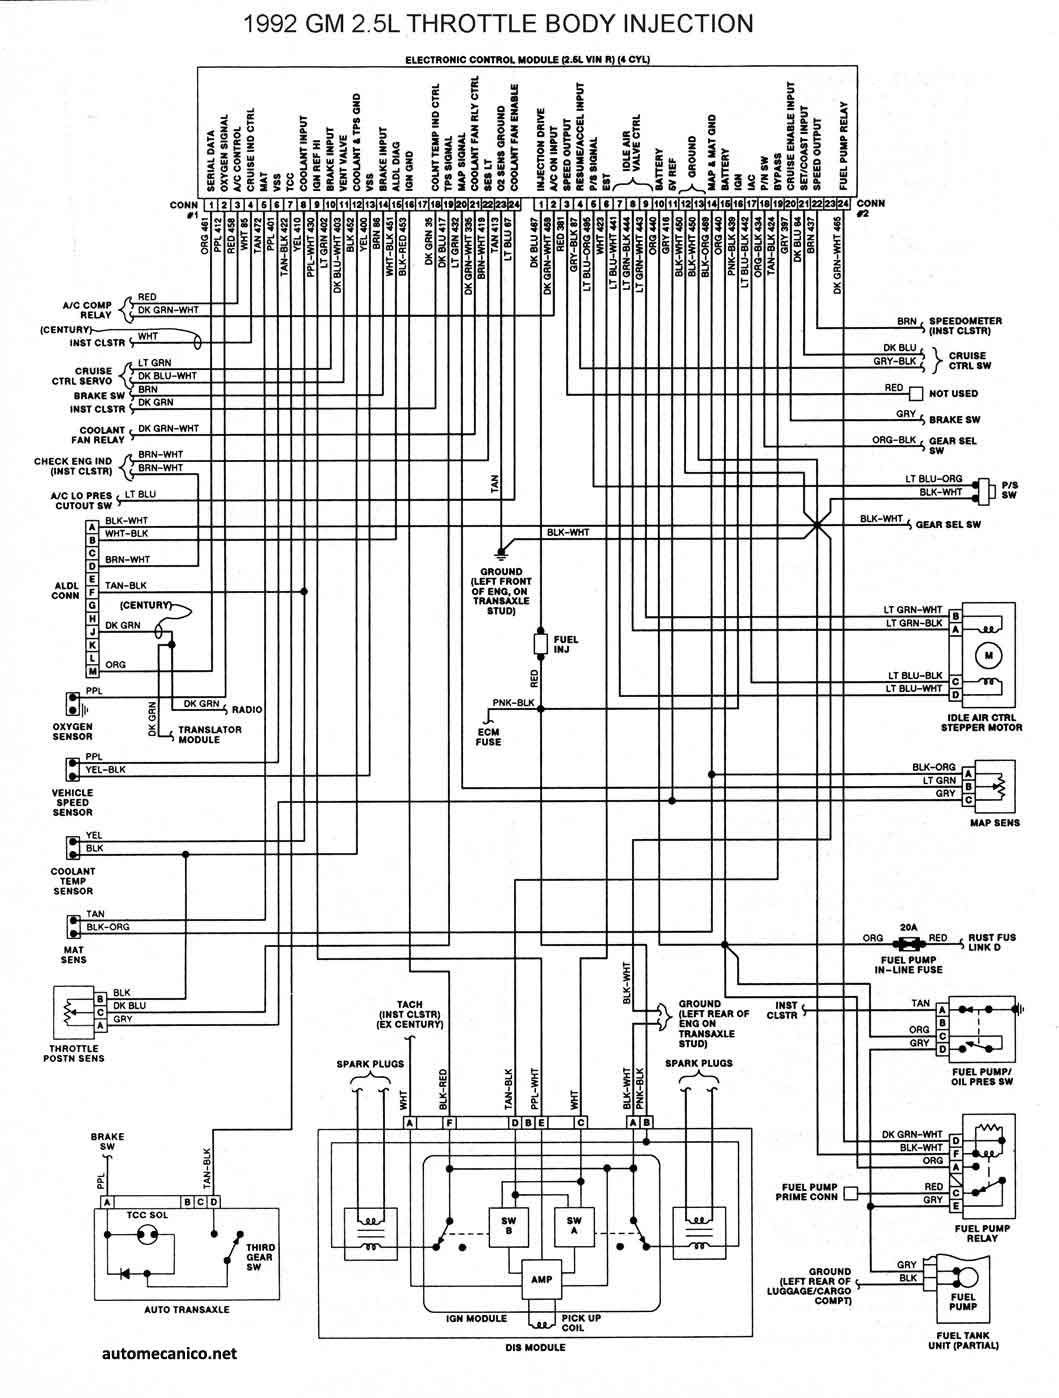 Chevy Spark Plug Wiring Diagram Diagrams 96 S10 Wire 07 Suburban Firing Order Autos Post Chevrolet 350